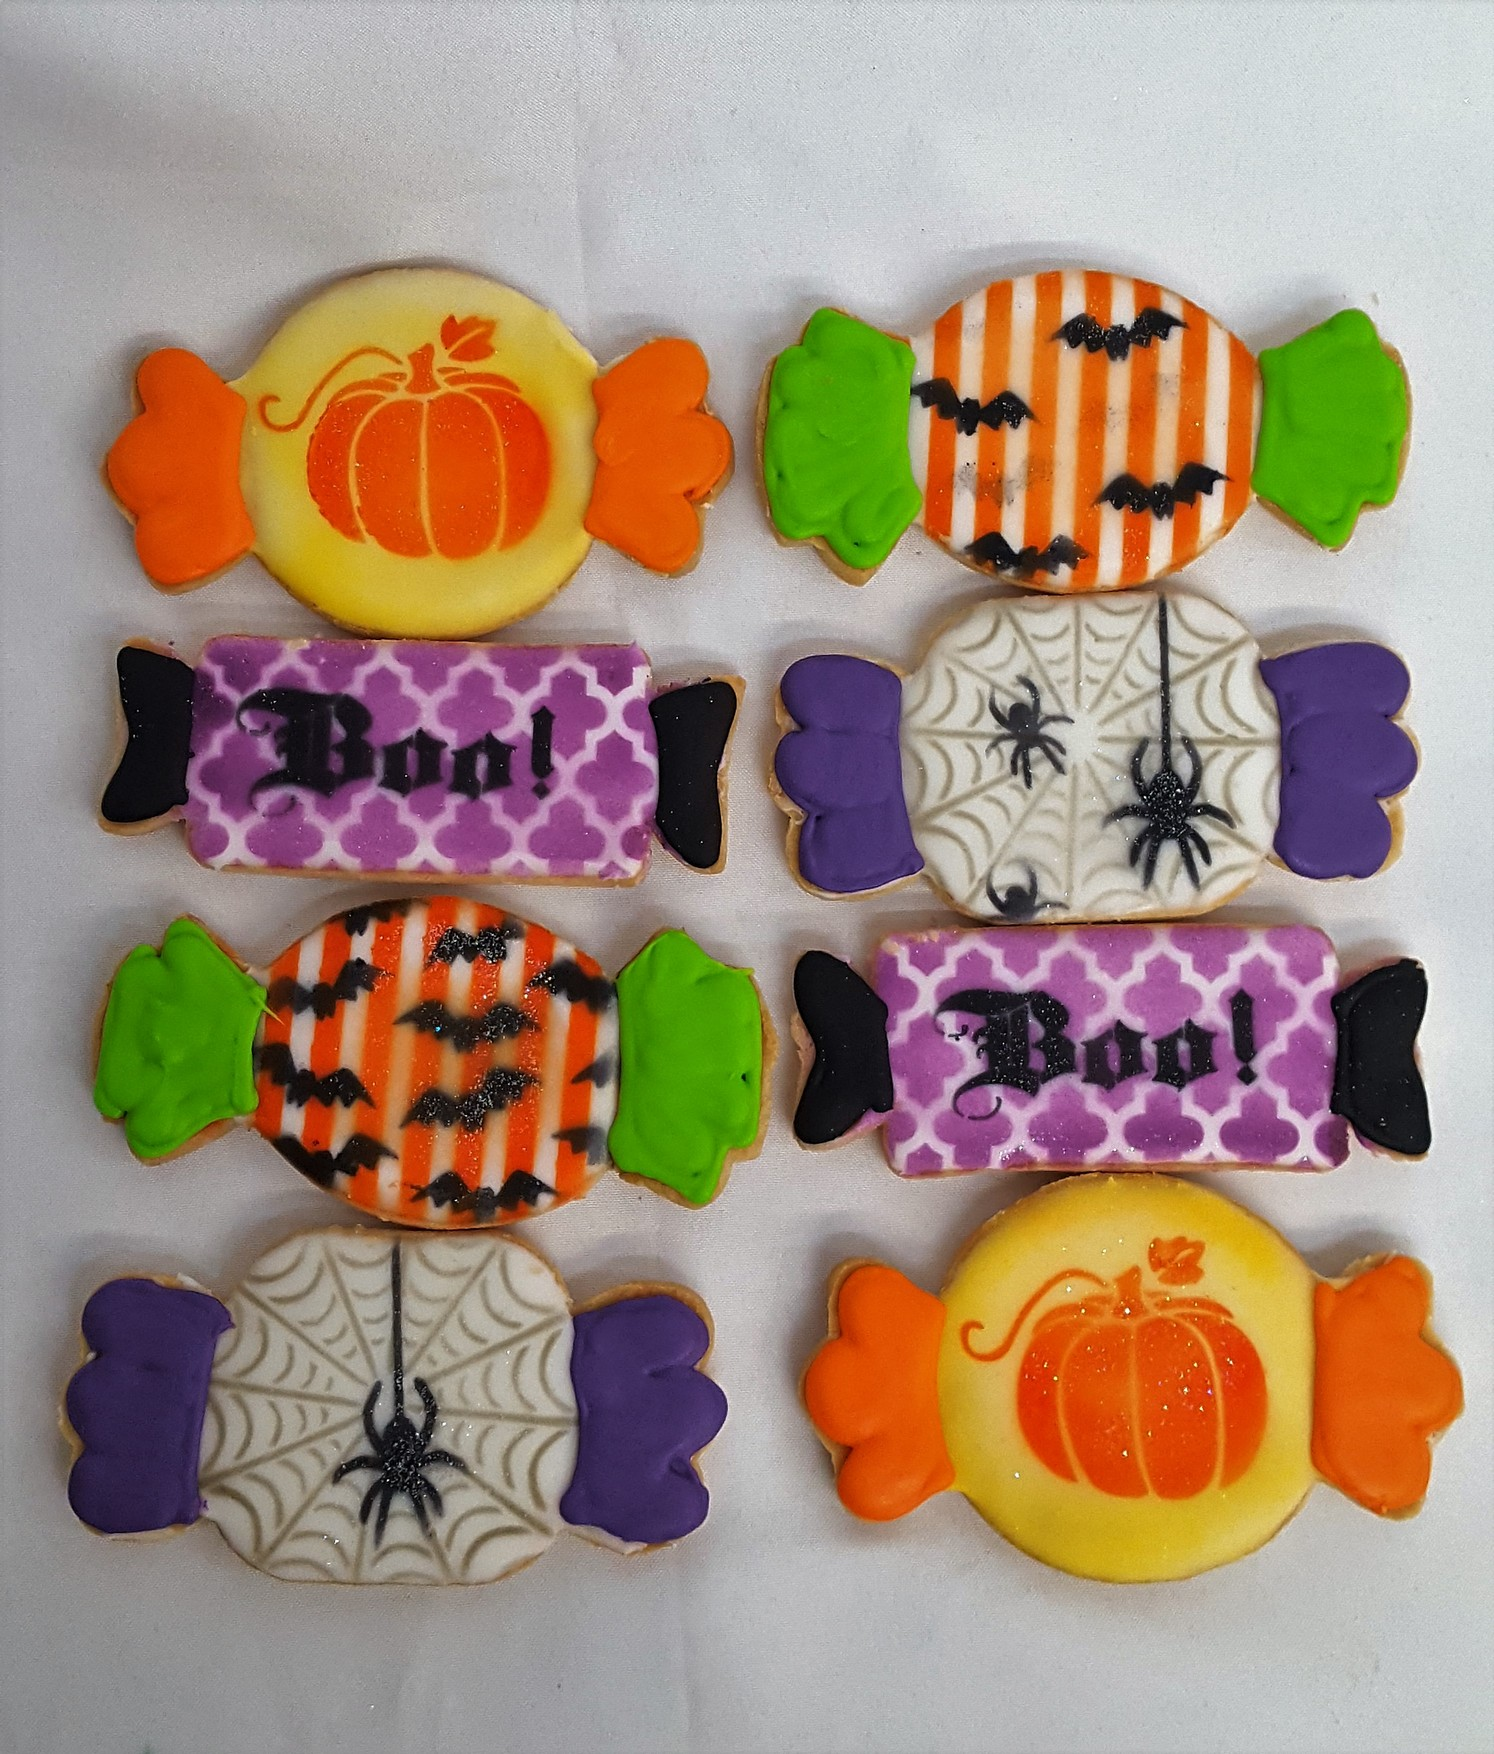 Halloween Candy Iced Cutout Cookies from Cinotti's Bakery